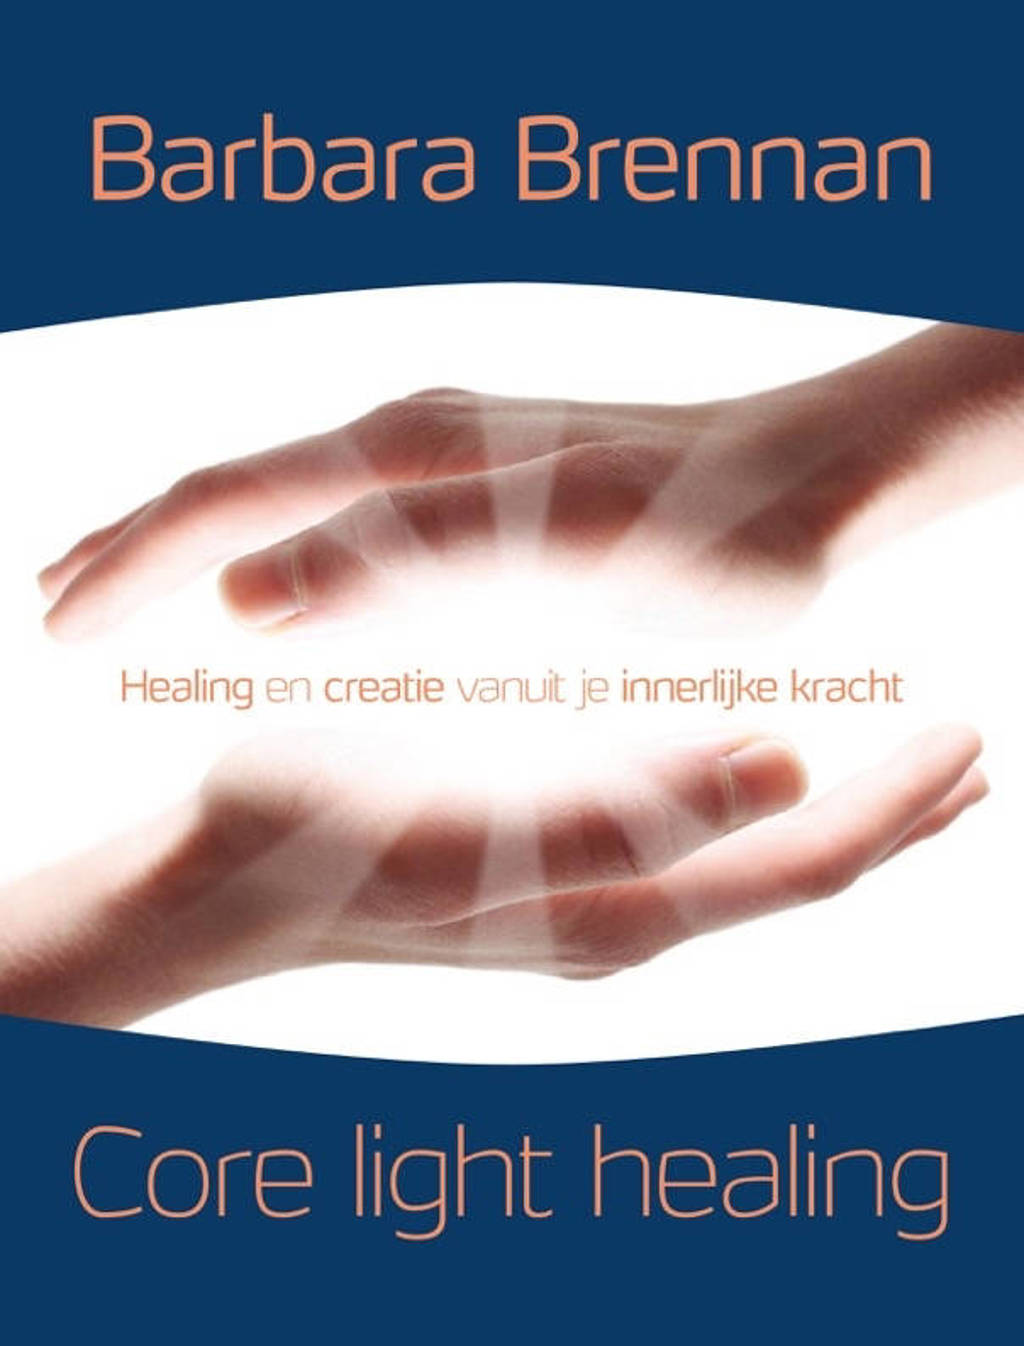 Core light healing - Barbara Brennan